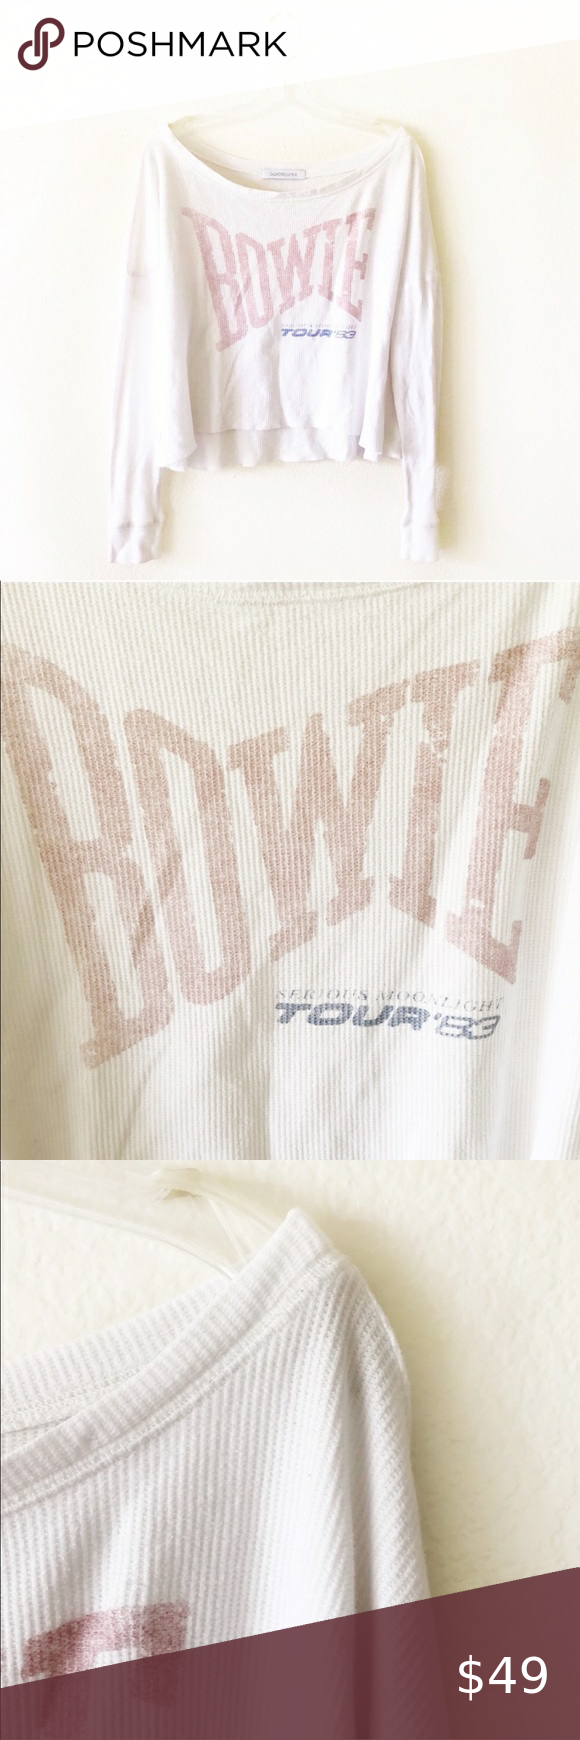 BOWIE oversized graphic band tee (Daydreamer) BOWIE oversized graphic band tee (...